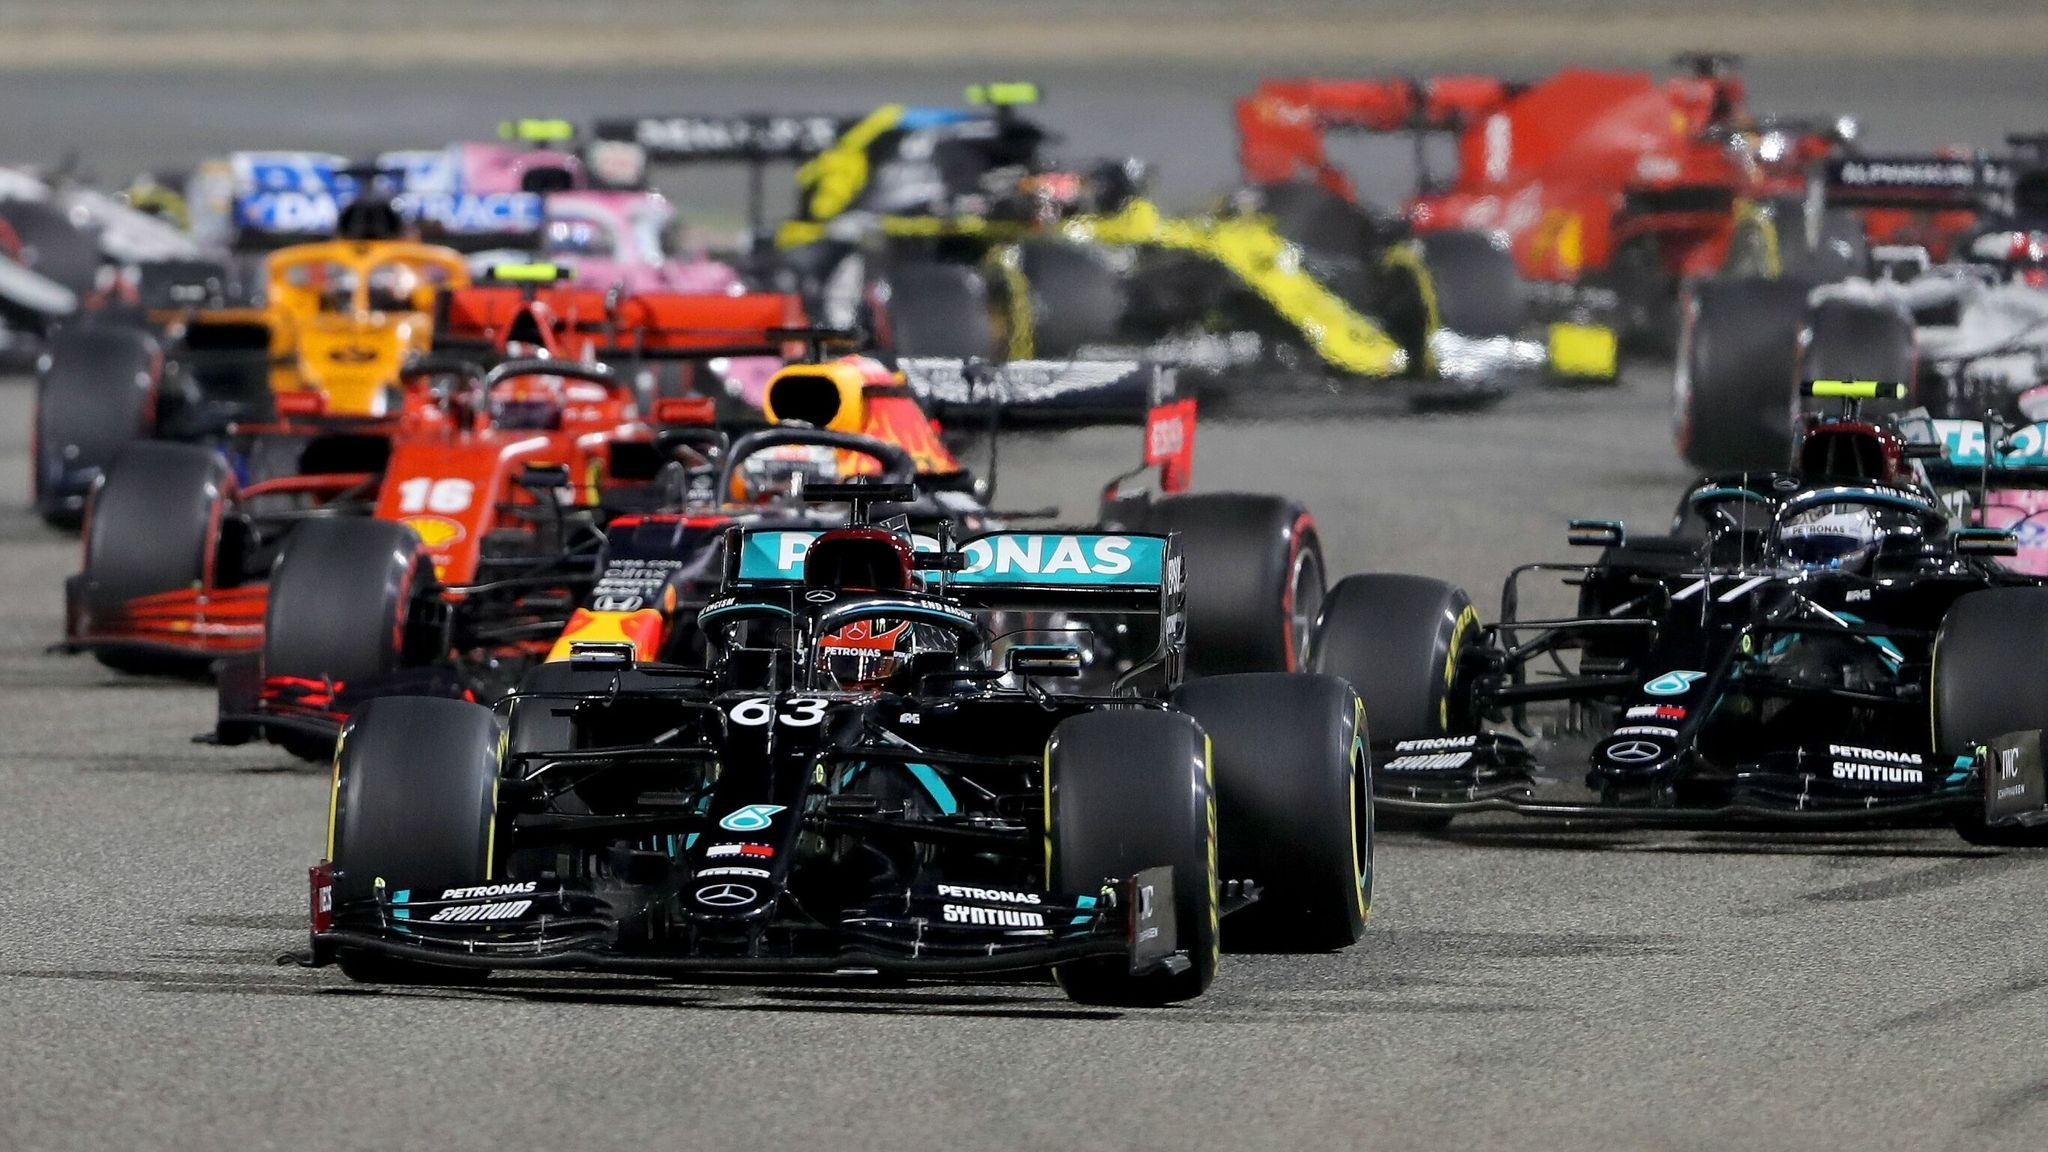 F1 Calendar Of Record 23 Races For 2021 Season Gains Fia